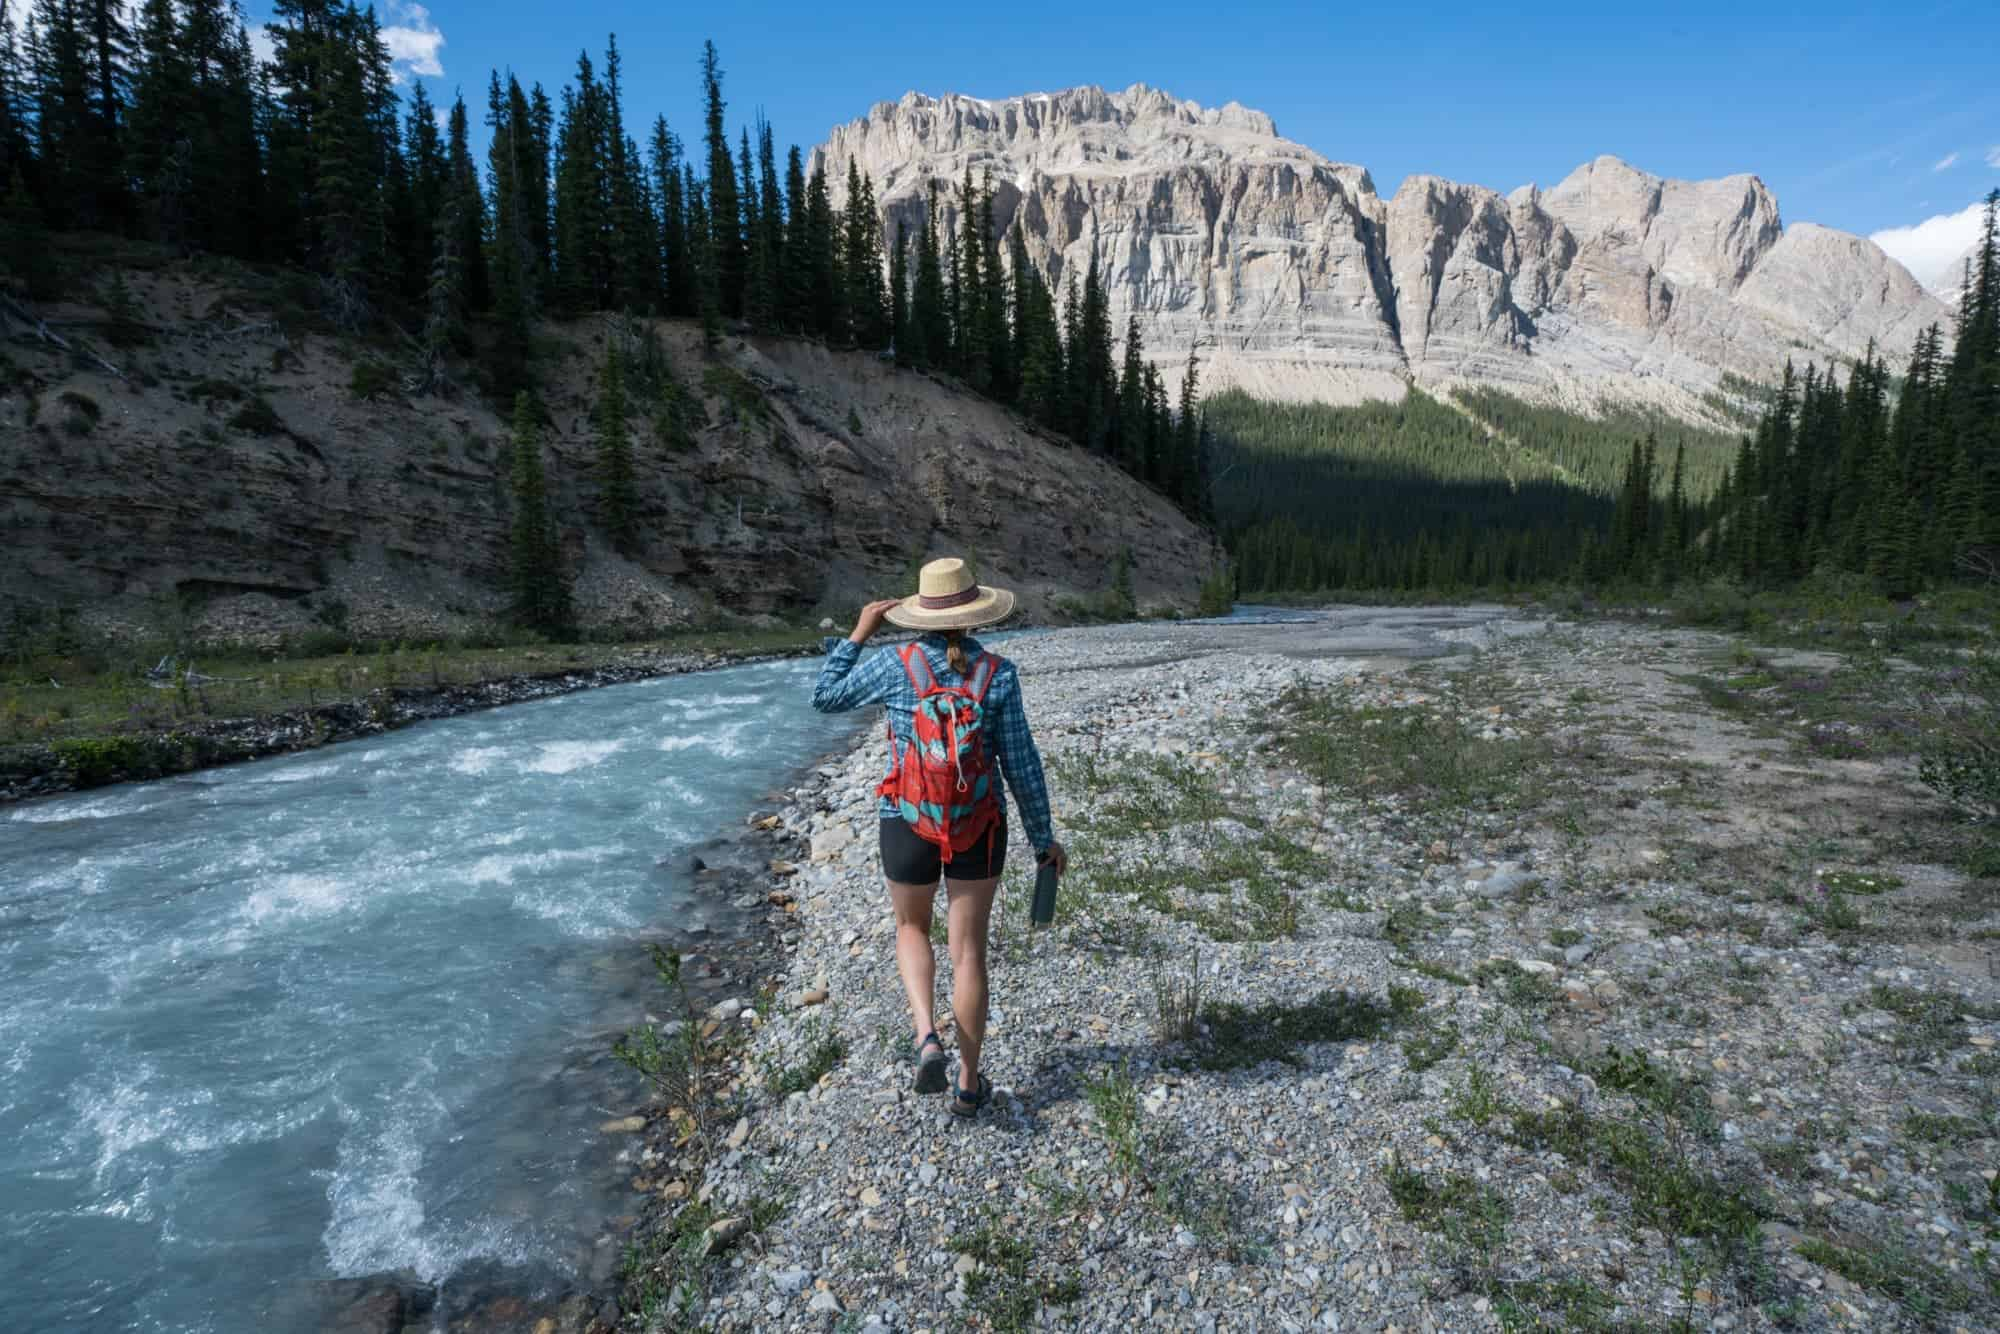 Explore turquoise waters, glacial mountains and secluded camping on an overnight Maligne Lake Kayaking Trip in Alberta's Jasper National Park. Learn how to plan with a full trip report and information on backcountry campsite reservations, kayak rentals, itinerary recommendations & more.